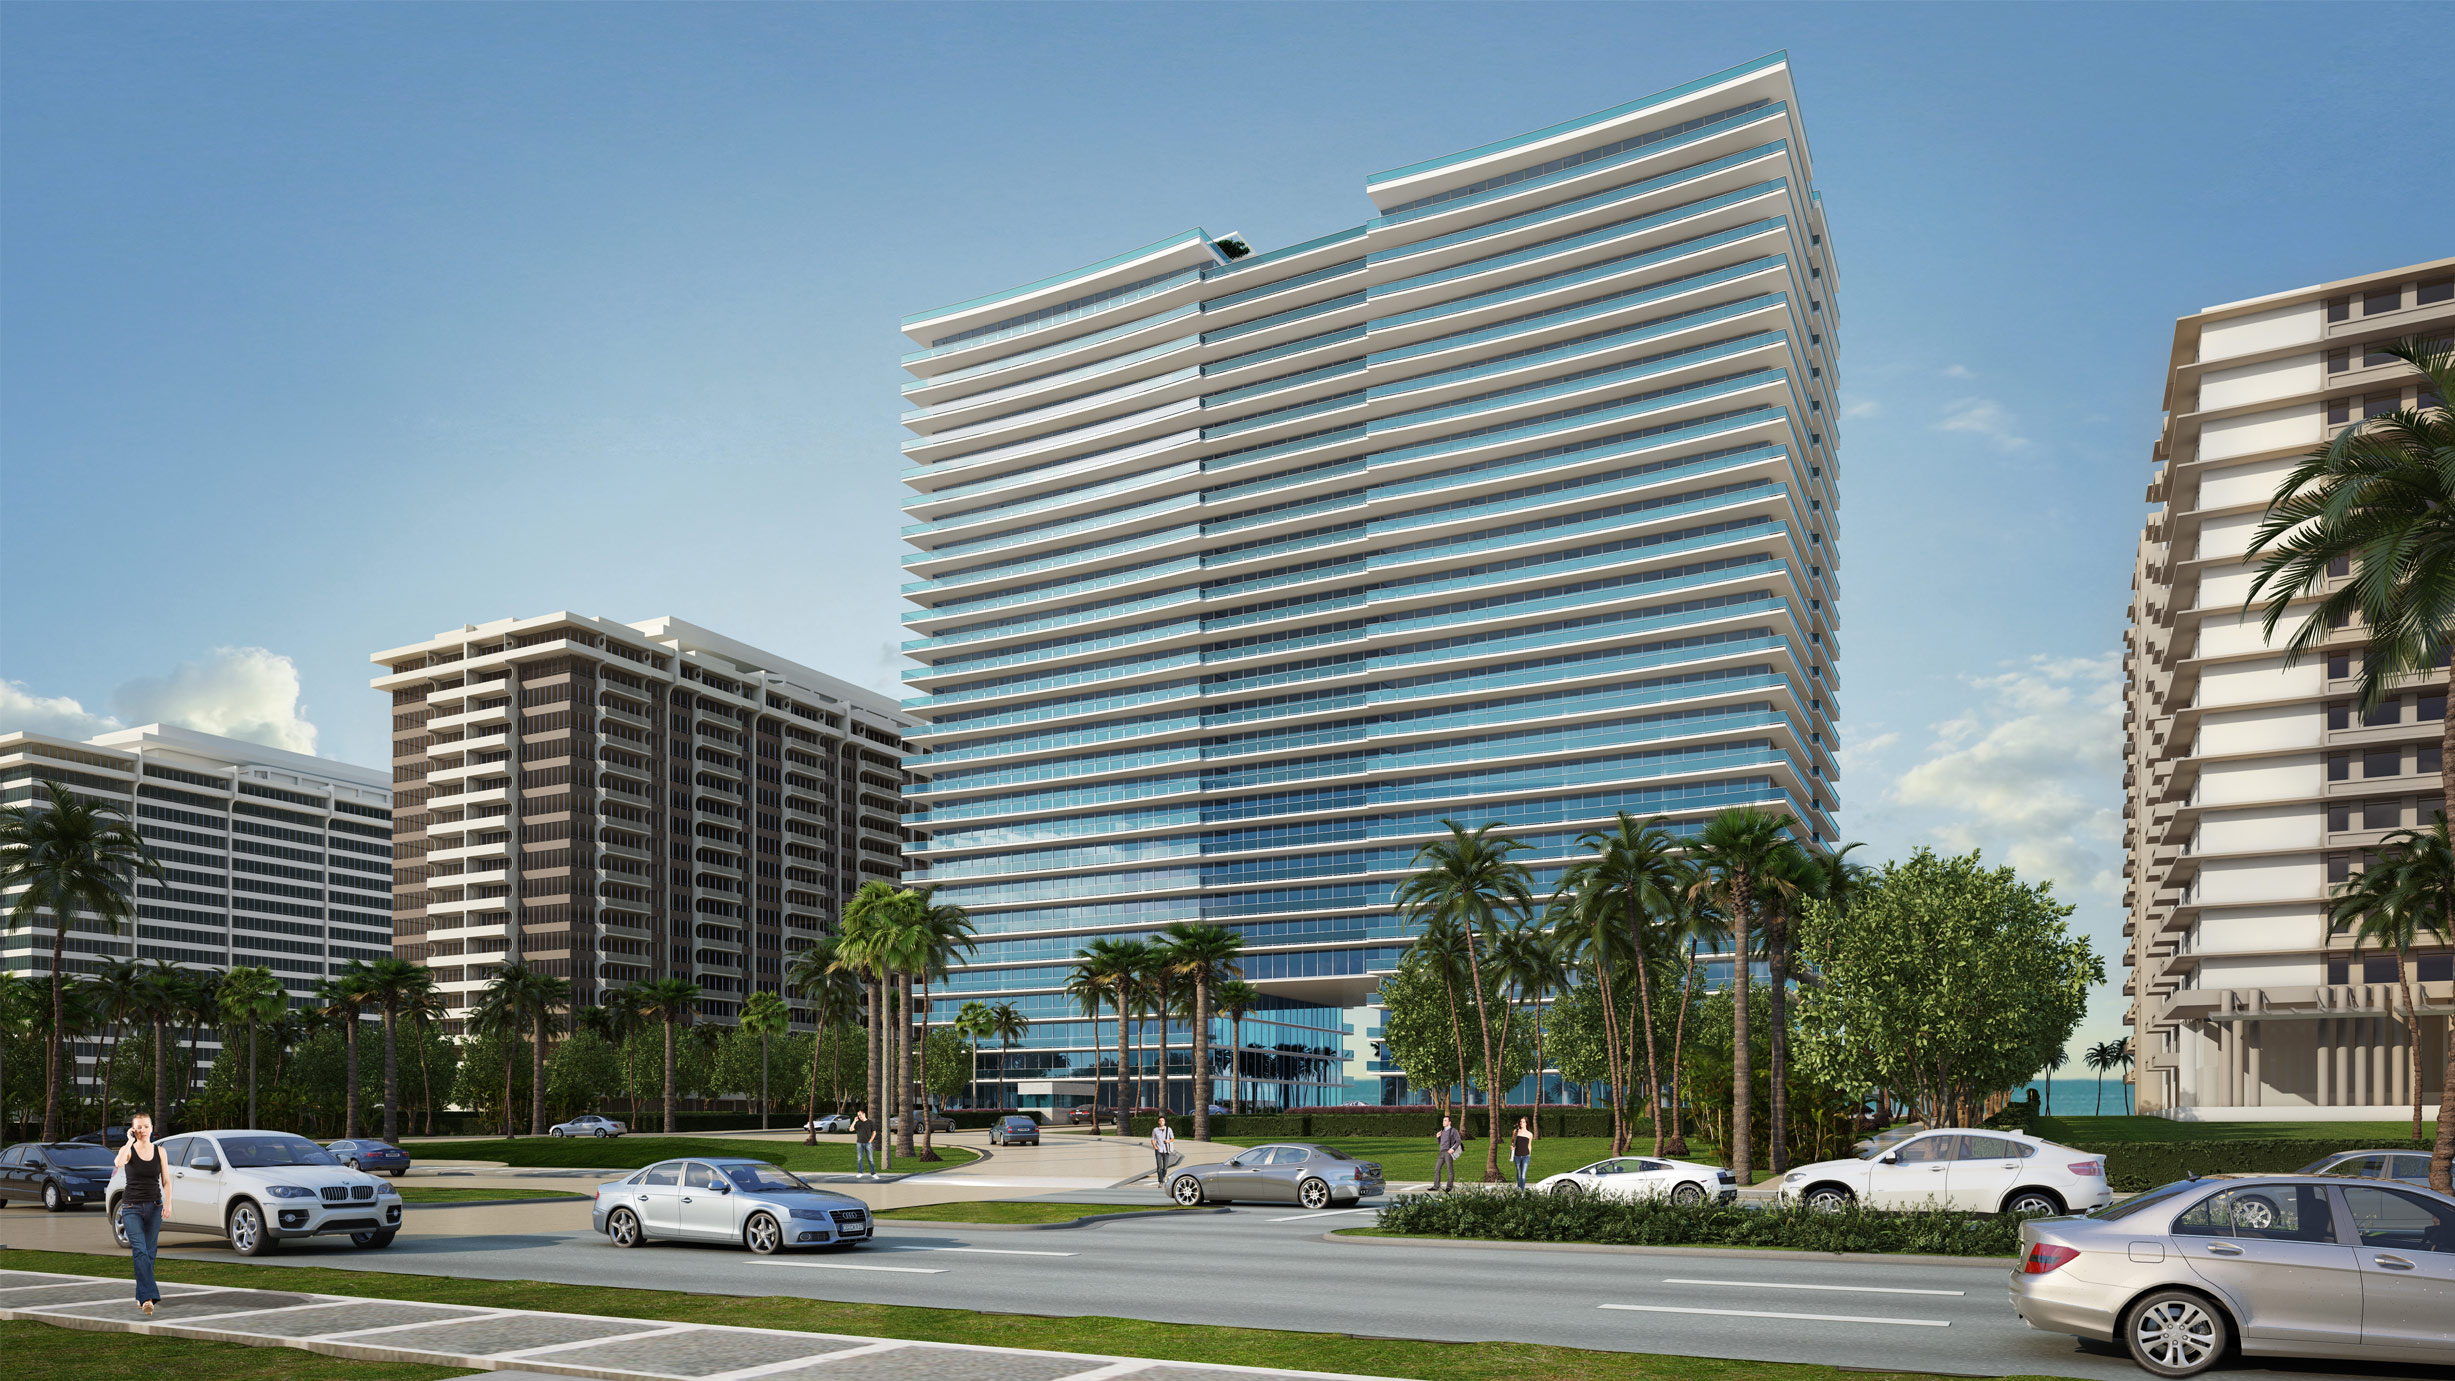 Street view of Oceana at Bal Harbour